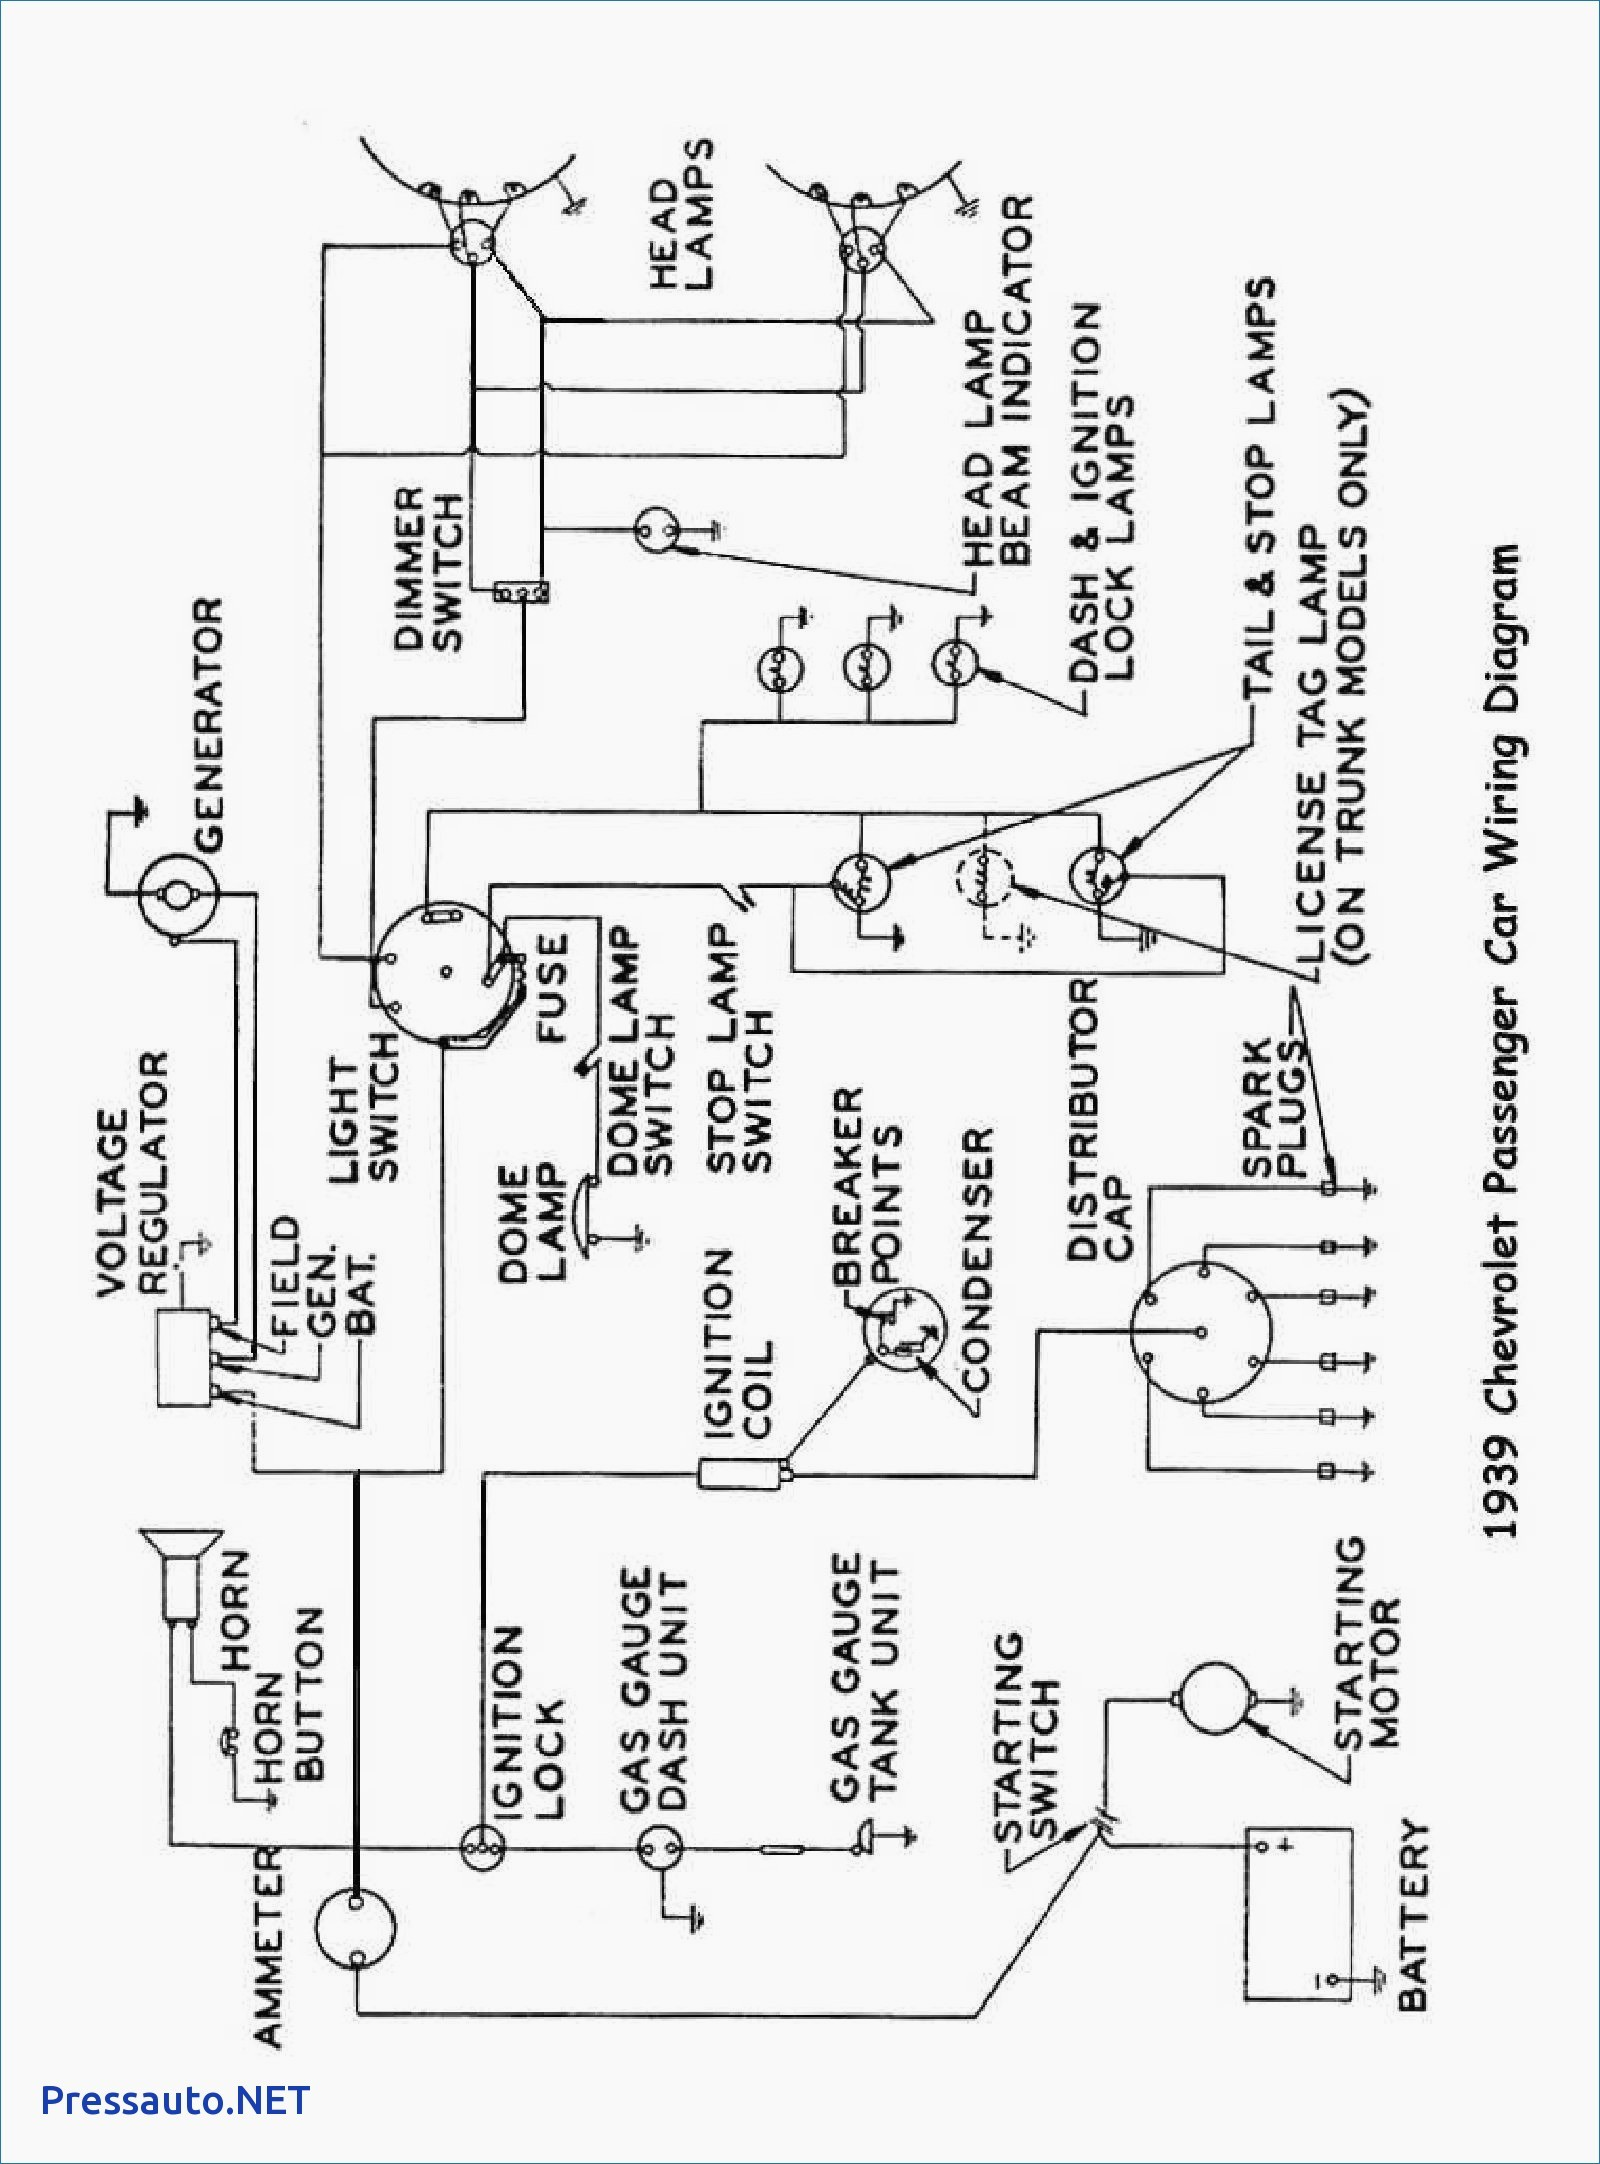 Car Dimmer Switch Wiring Diagram Unique Dimmer Switch Wiring Diagram Diagram Of Car Dimmer Switch Wiring Diagram